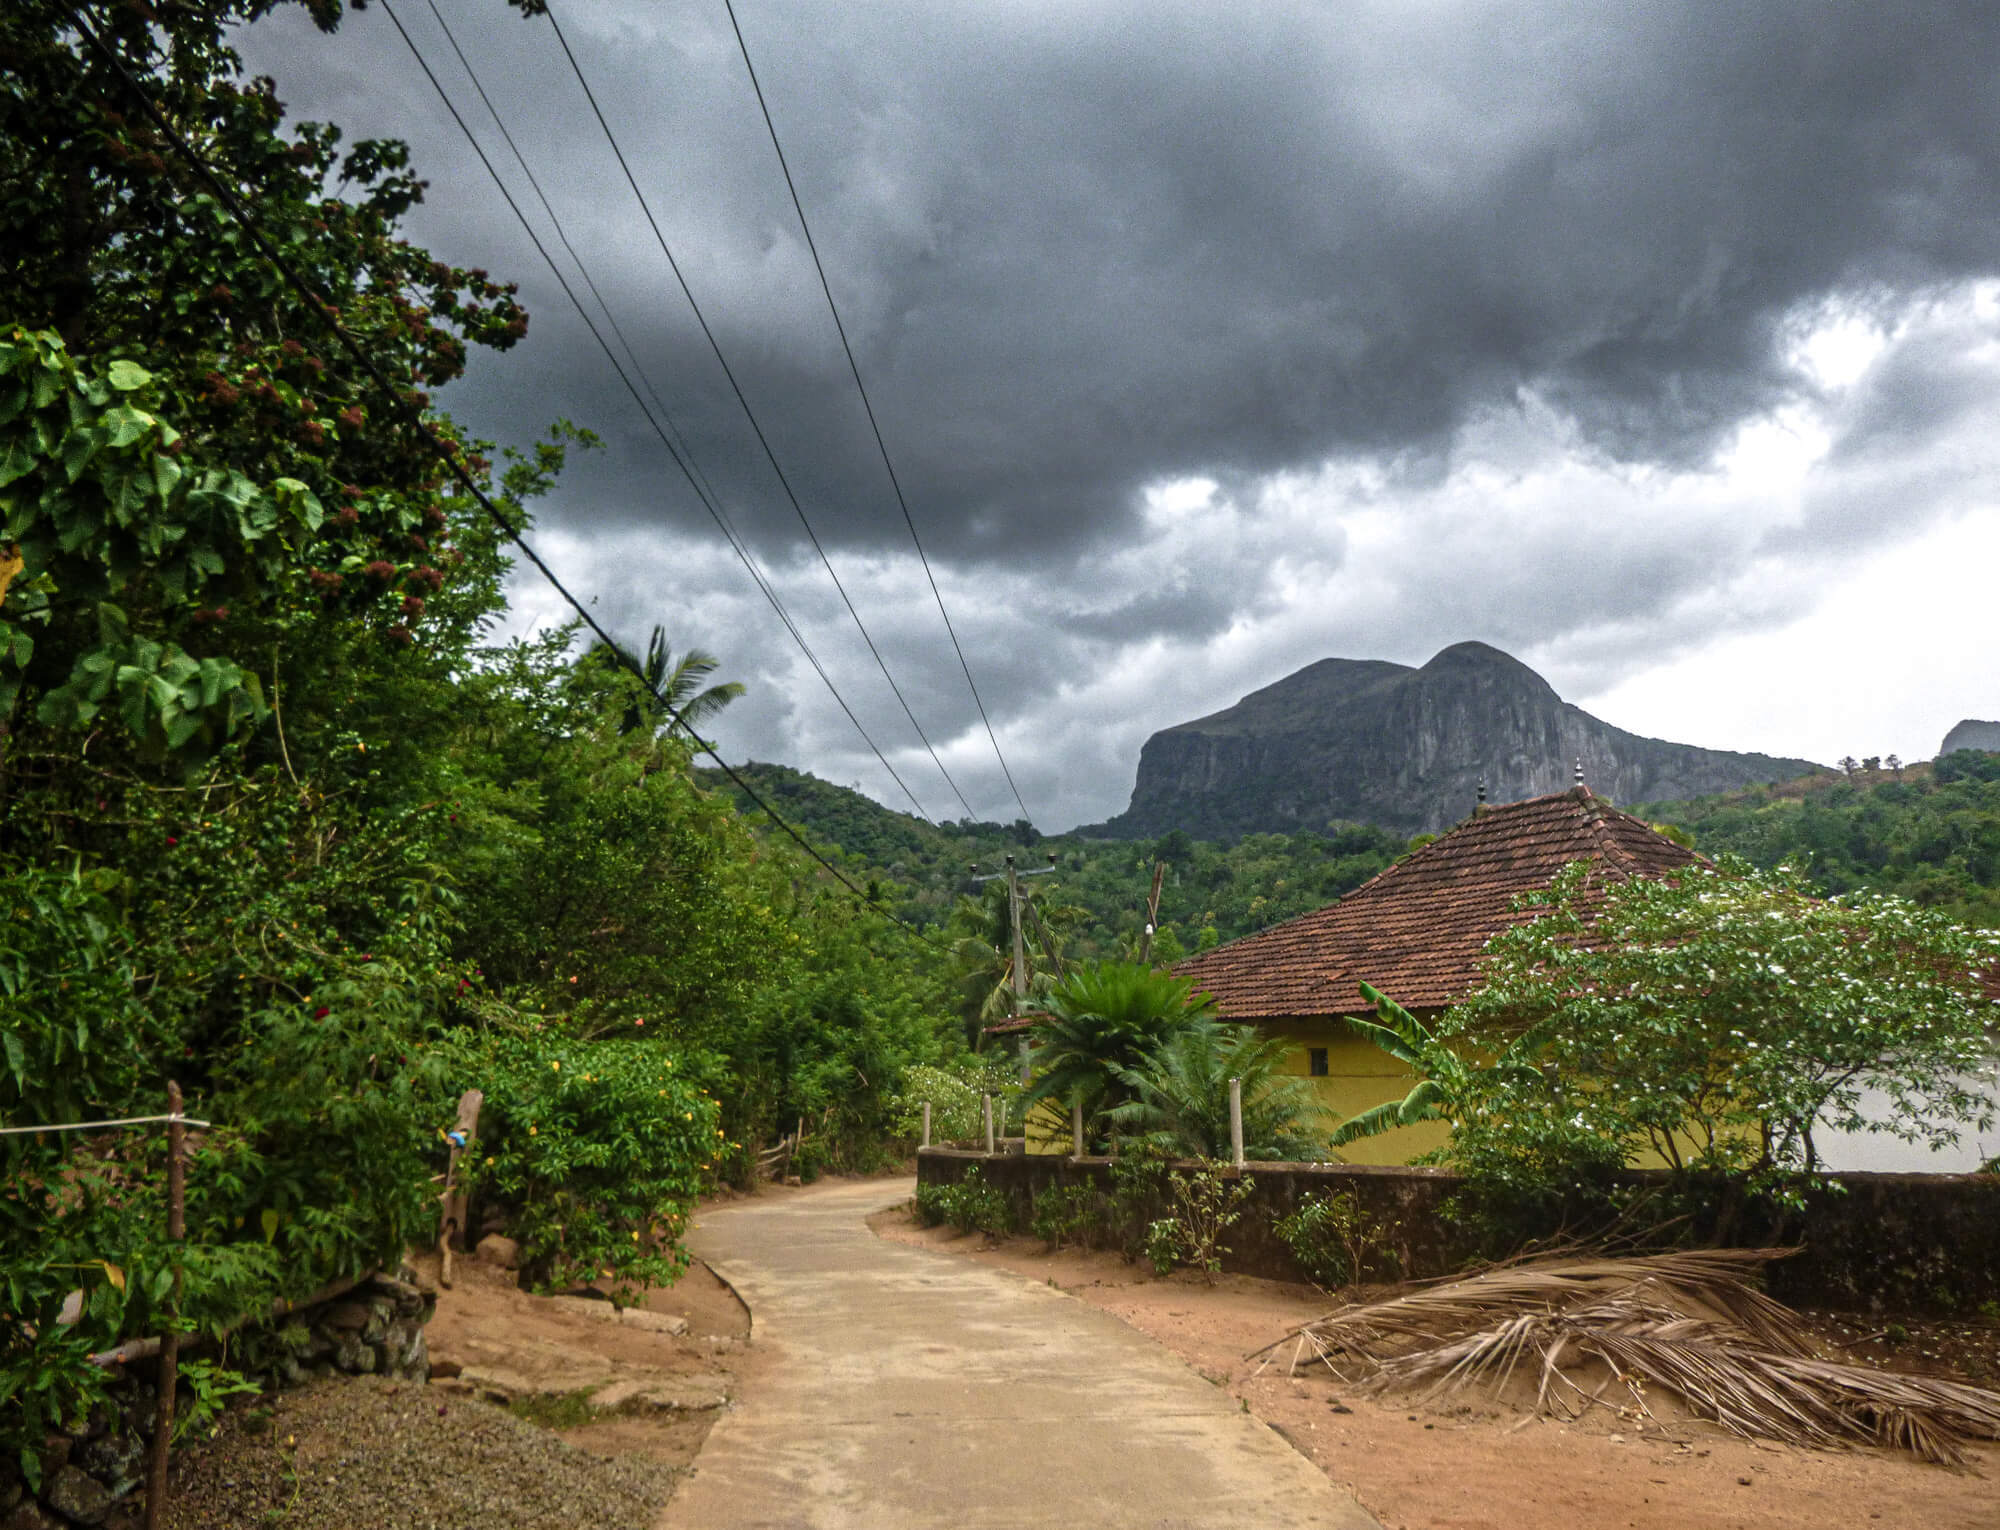 Stormy weather in Sri Lanka's Knuckles Mountain Range